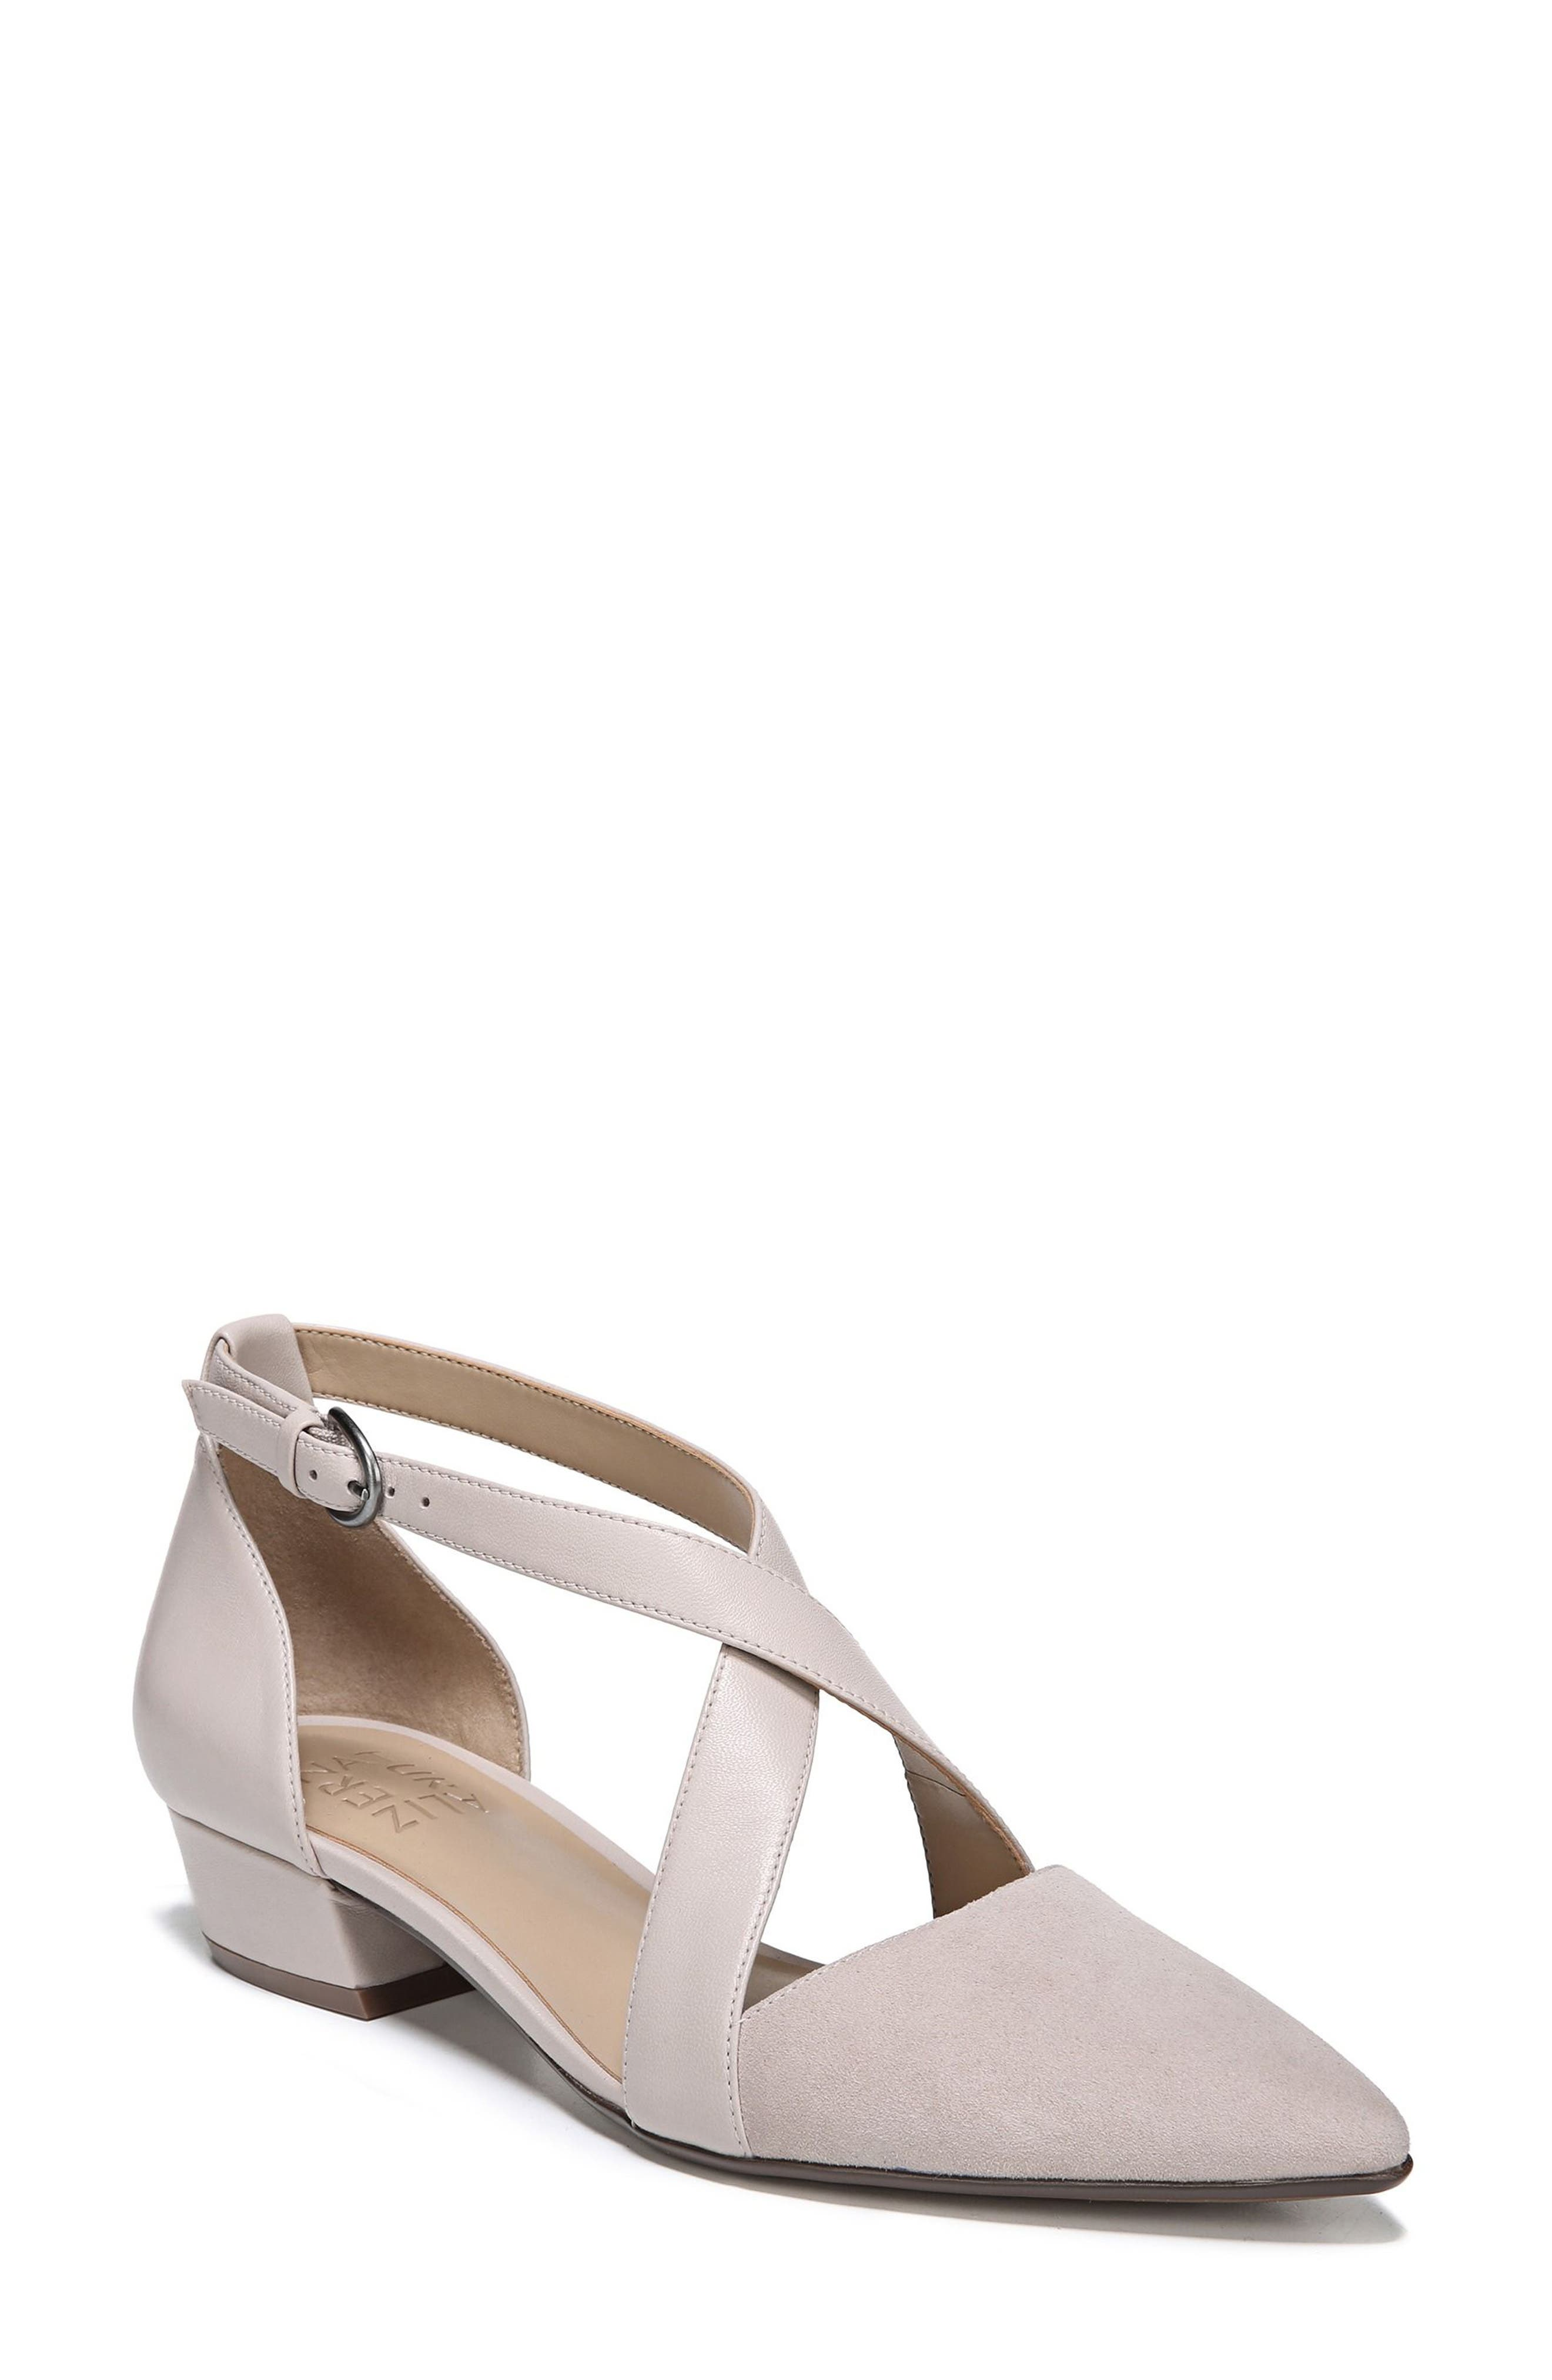 Blakely Pump, Main, color, SOFT MARBLE LEATHER